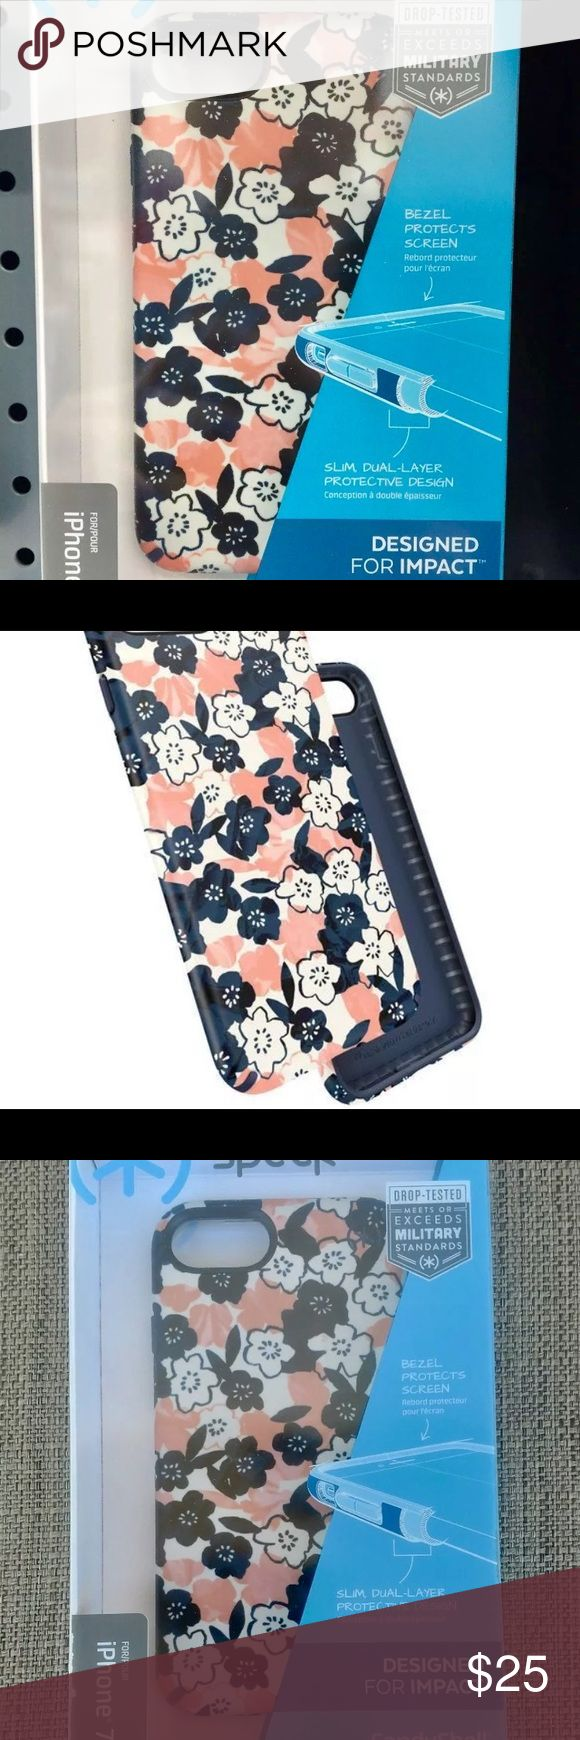 iPhone 7 Speck Case Fashion Flowers in Retail Box Still in retail package Authentic Speck Case for iPhone 7 this case meets and exceeds military standards when Drop- Tested, CandyShell Material, Dual layer design form uncompromising protection without the bulk. Perfect case fits in packet and protects your phone against everyday accidents. Speck Accessories Phone Cases